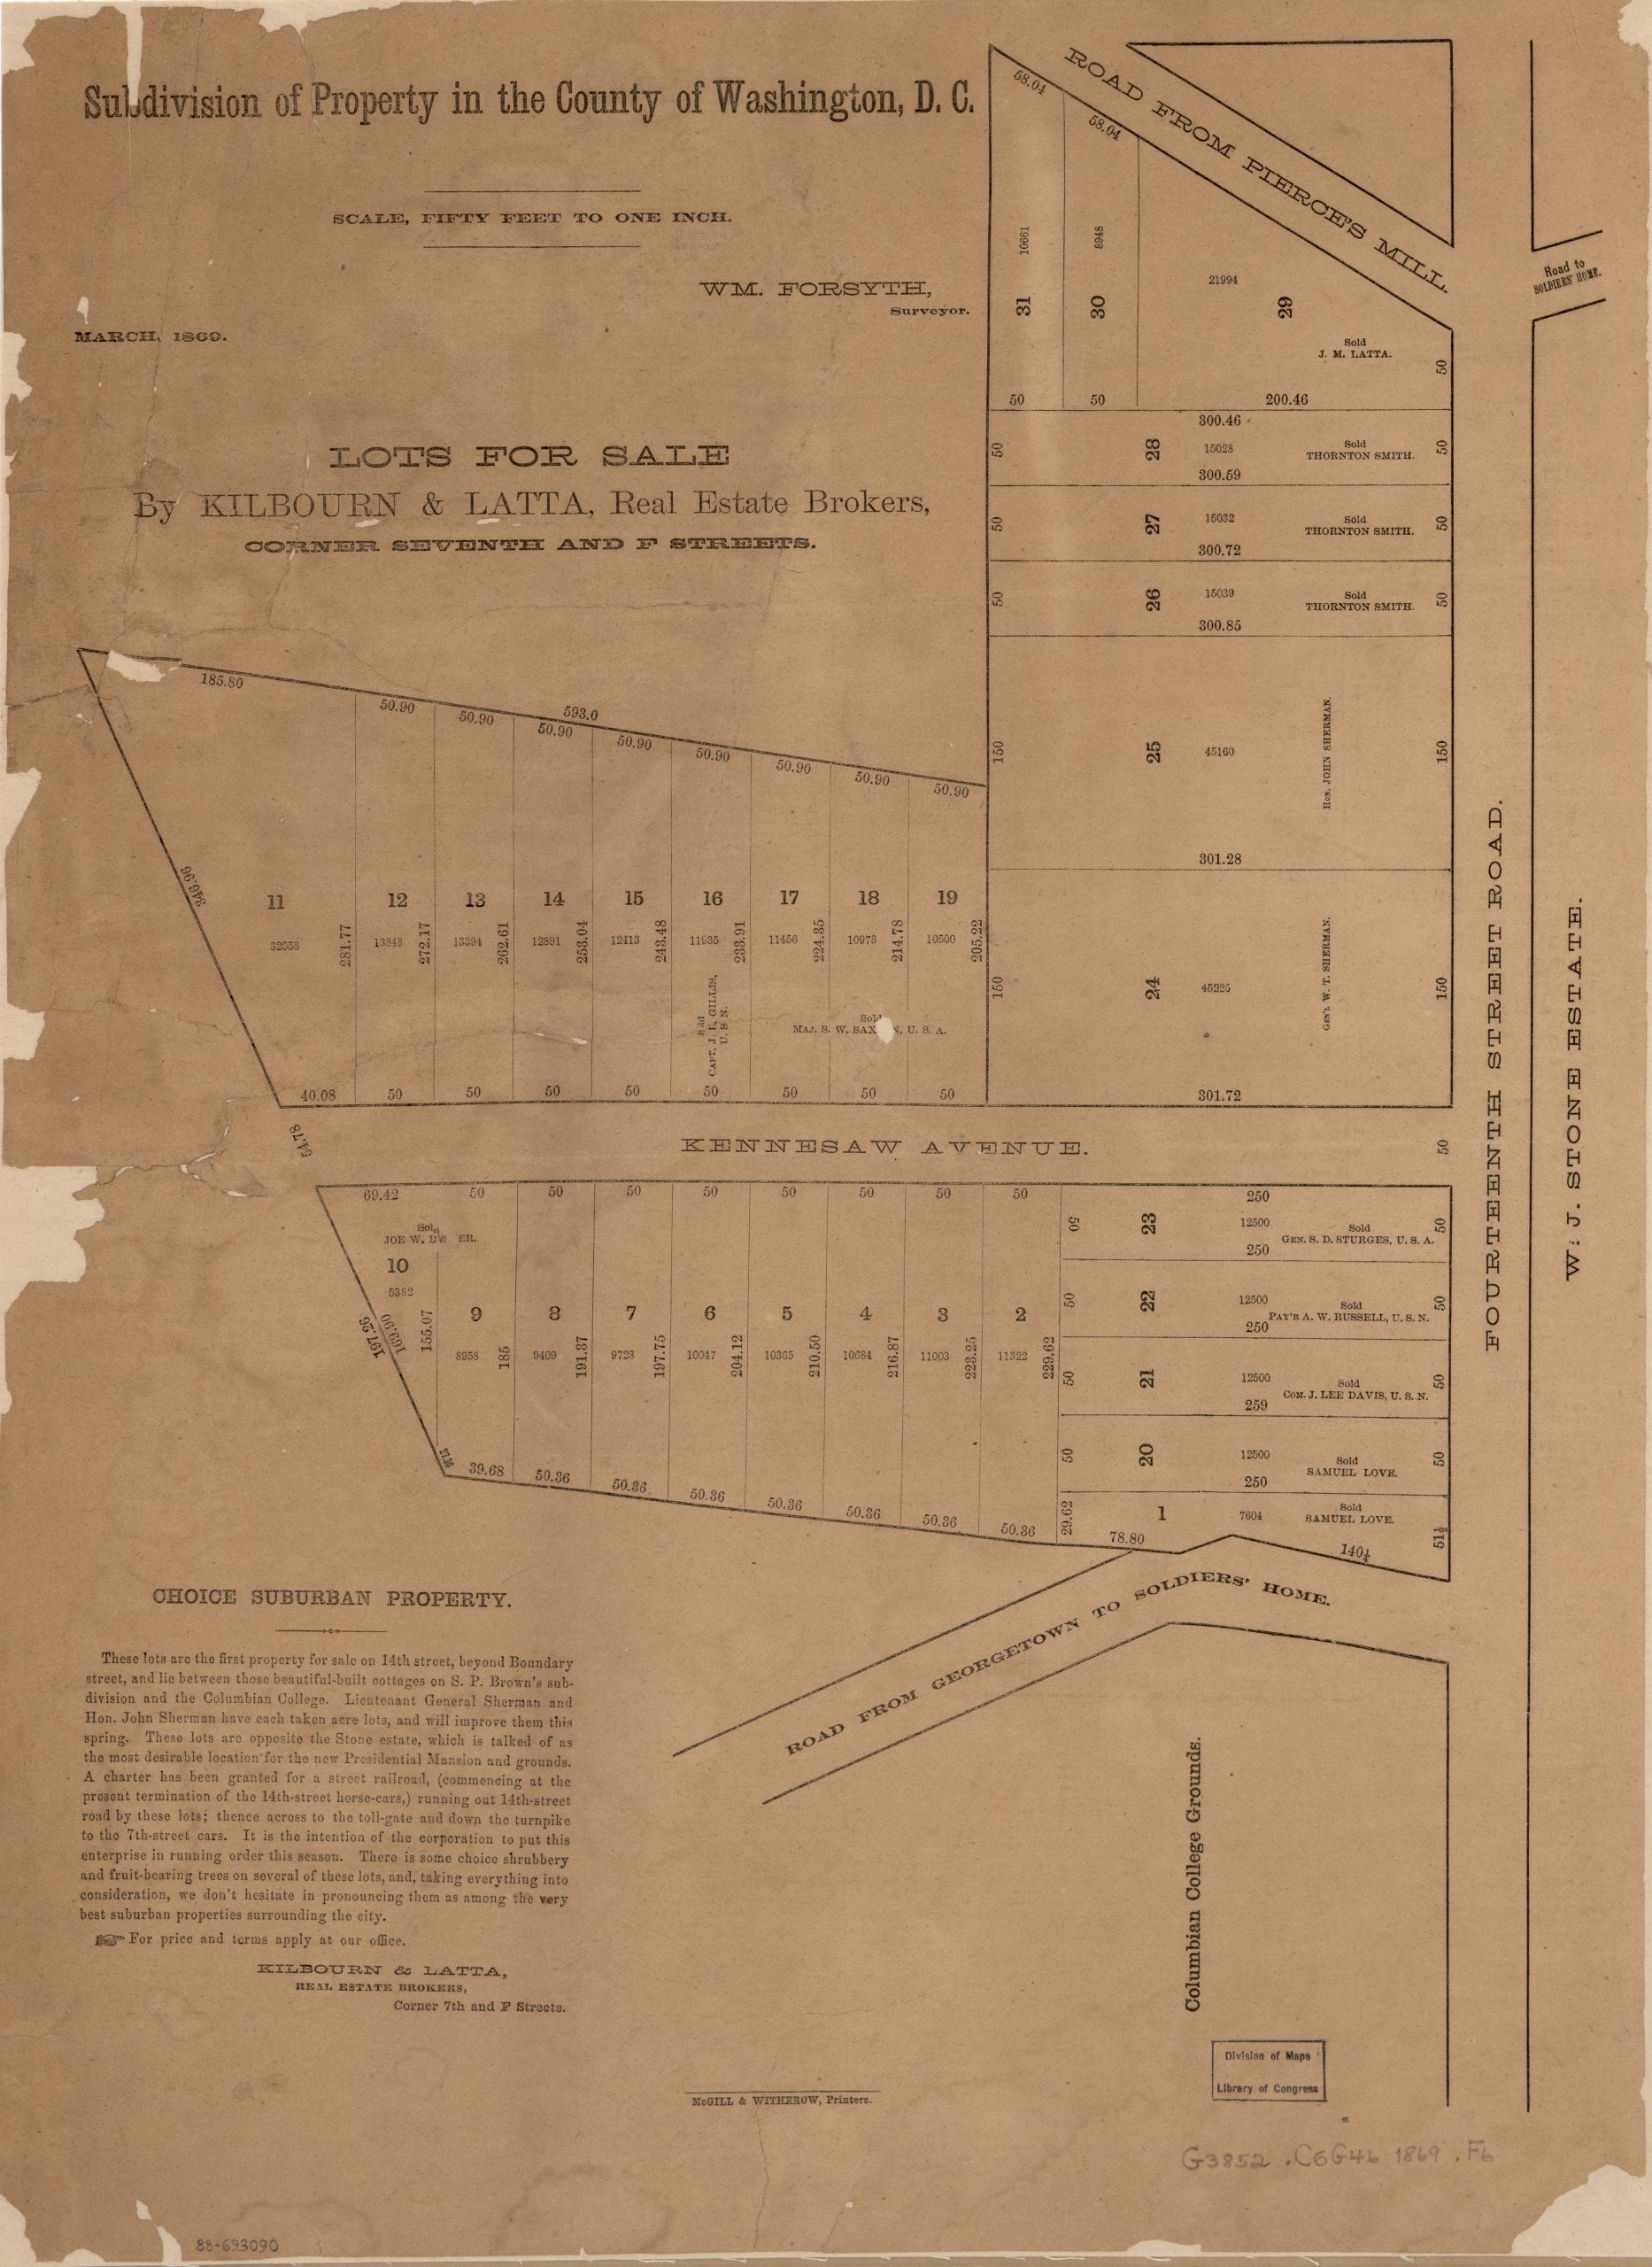 Sherman's subdivision of Columbia Heights in 1869